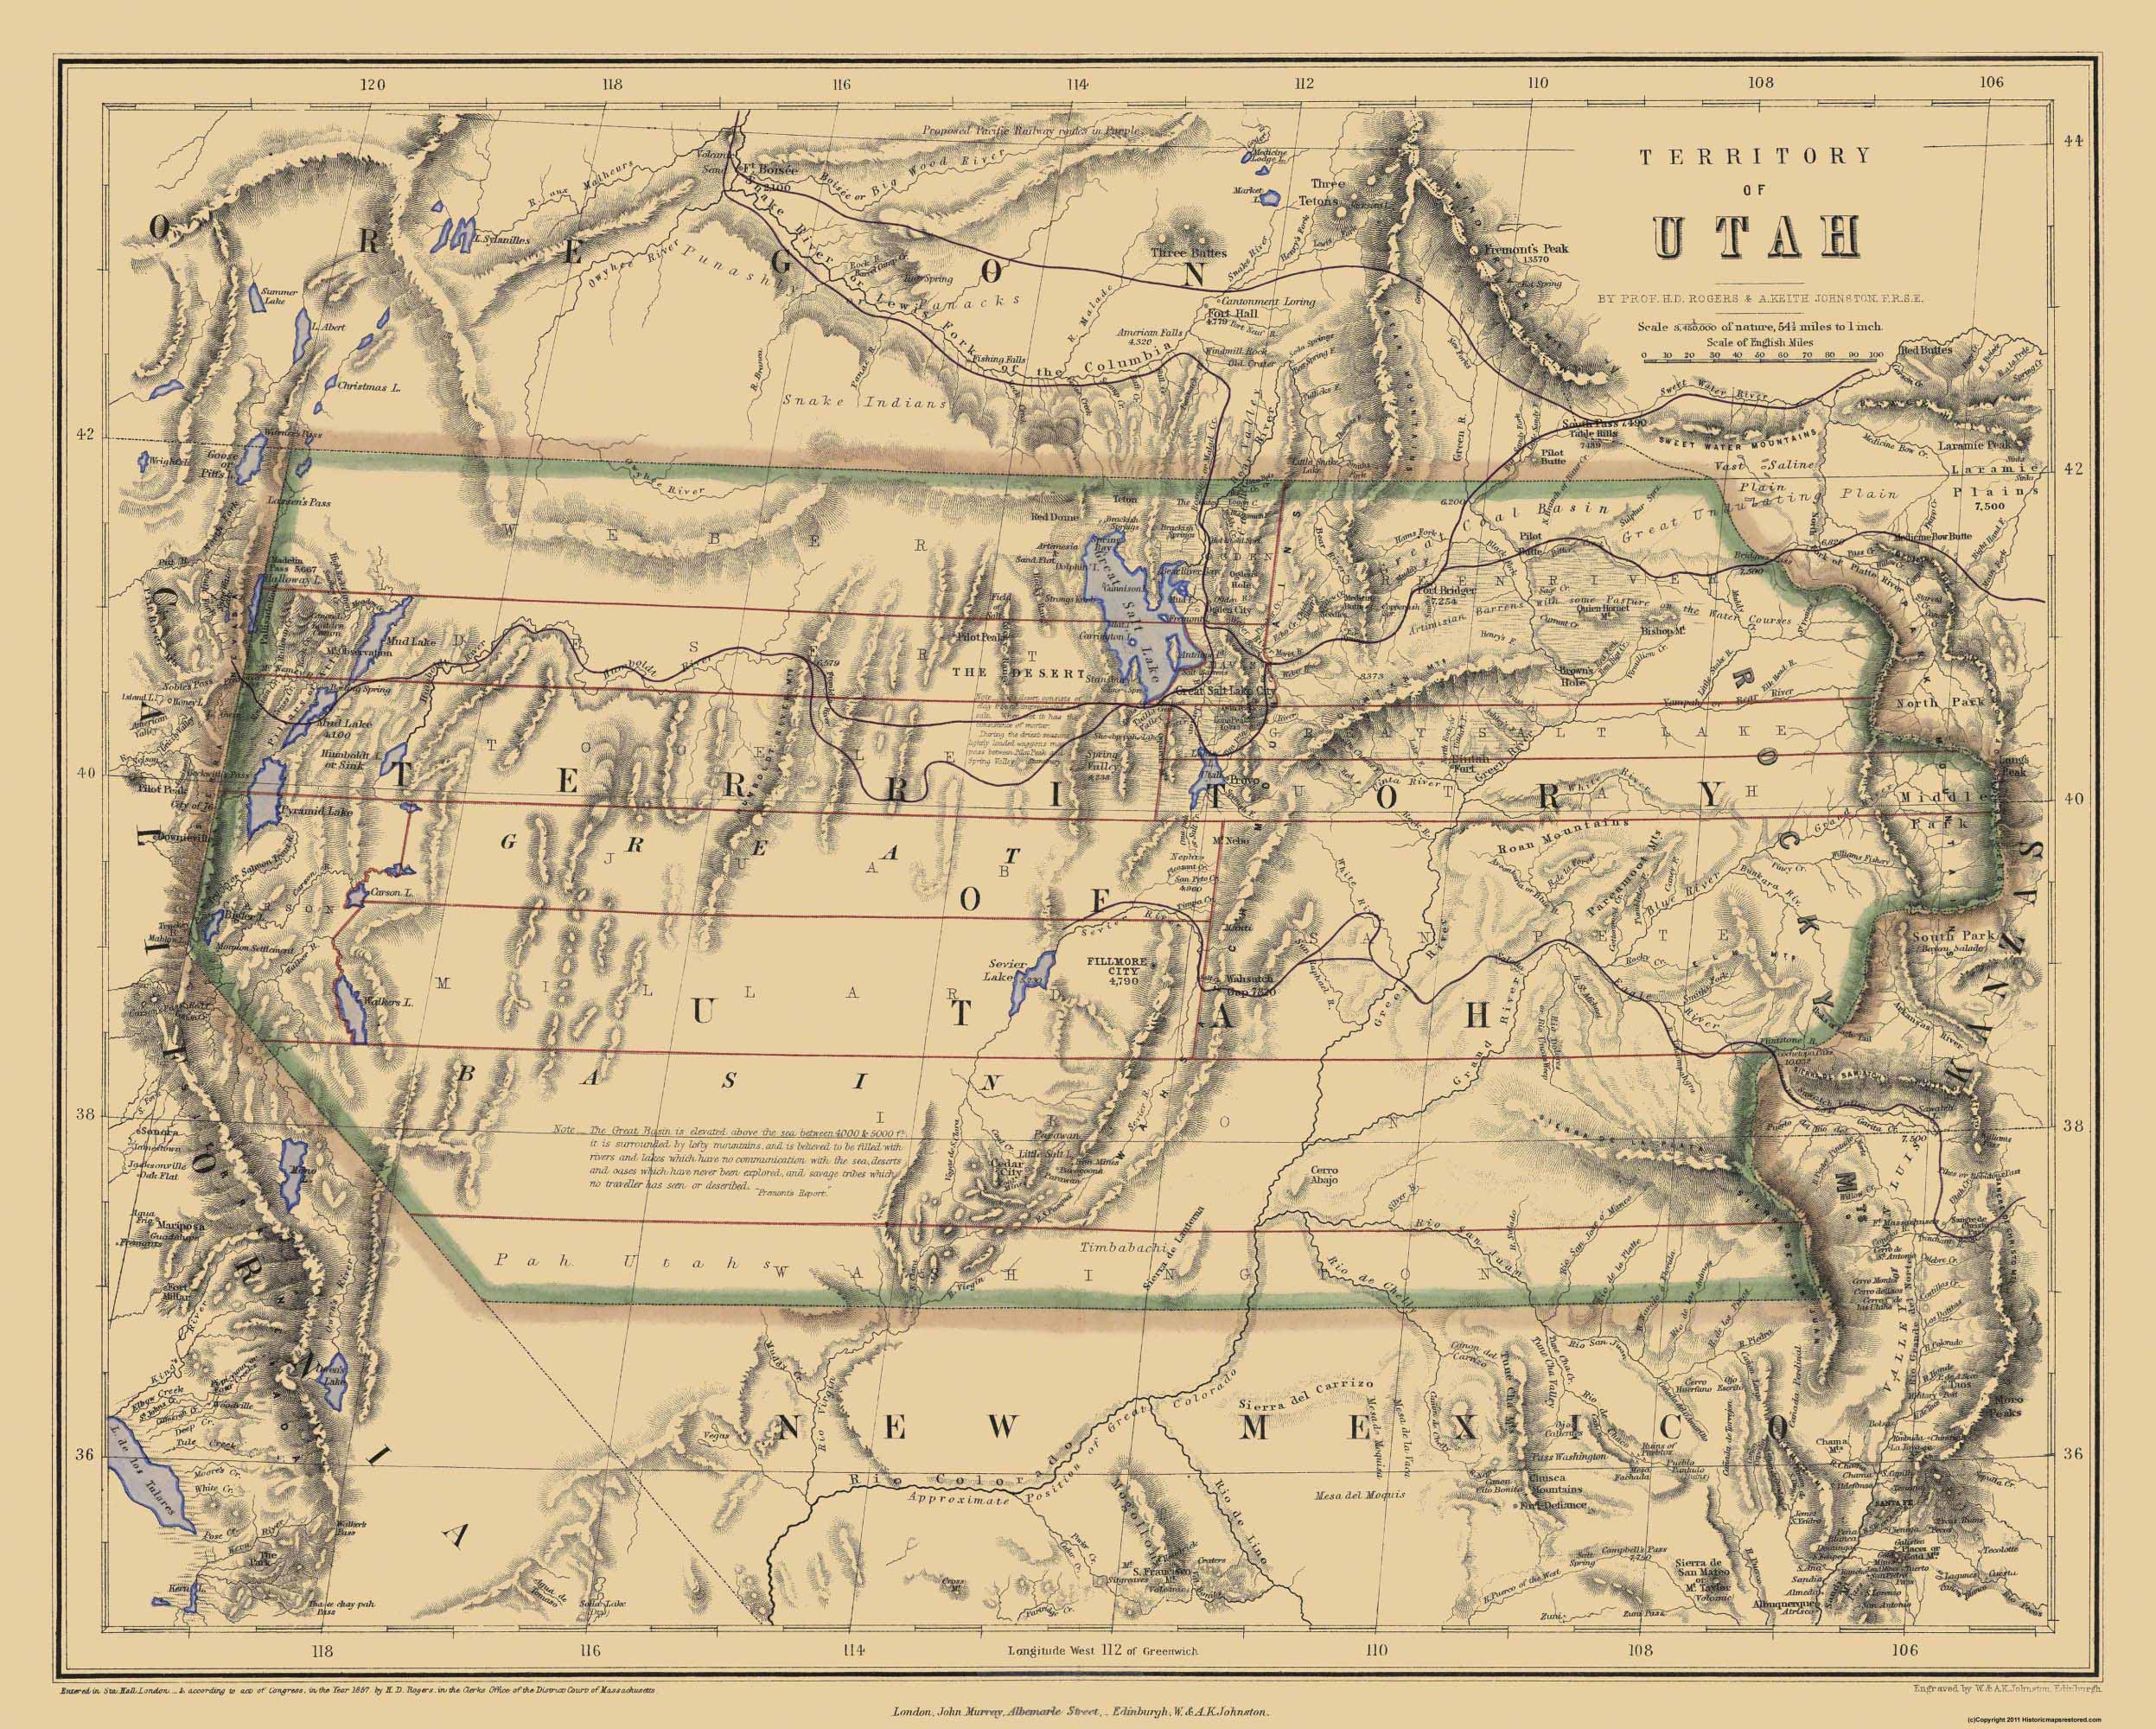 Old Historical City, County and State Maps of Utah on cuyahoga county parcel maps, stanislaus county parcel maps, summit county parcel maps, garfield county parcel maps, siskiyou county parcel maps, pinal county parcel maps,